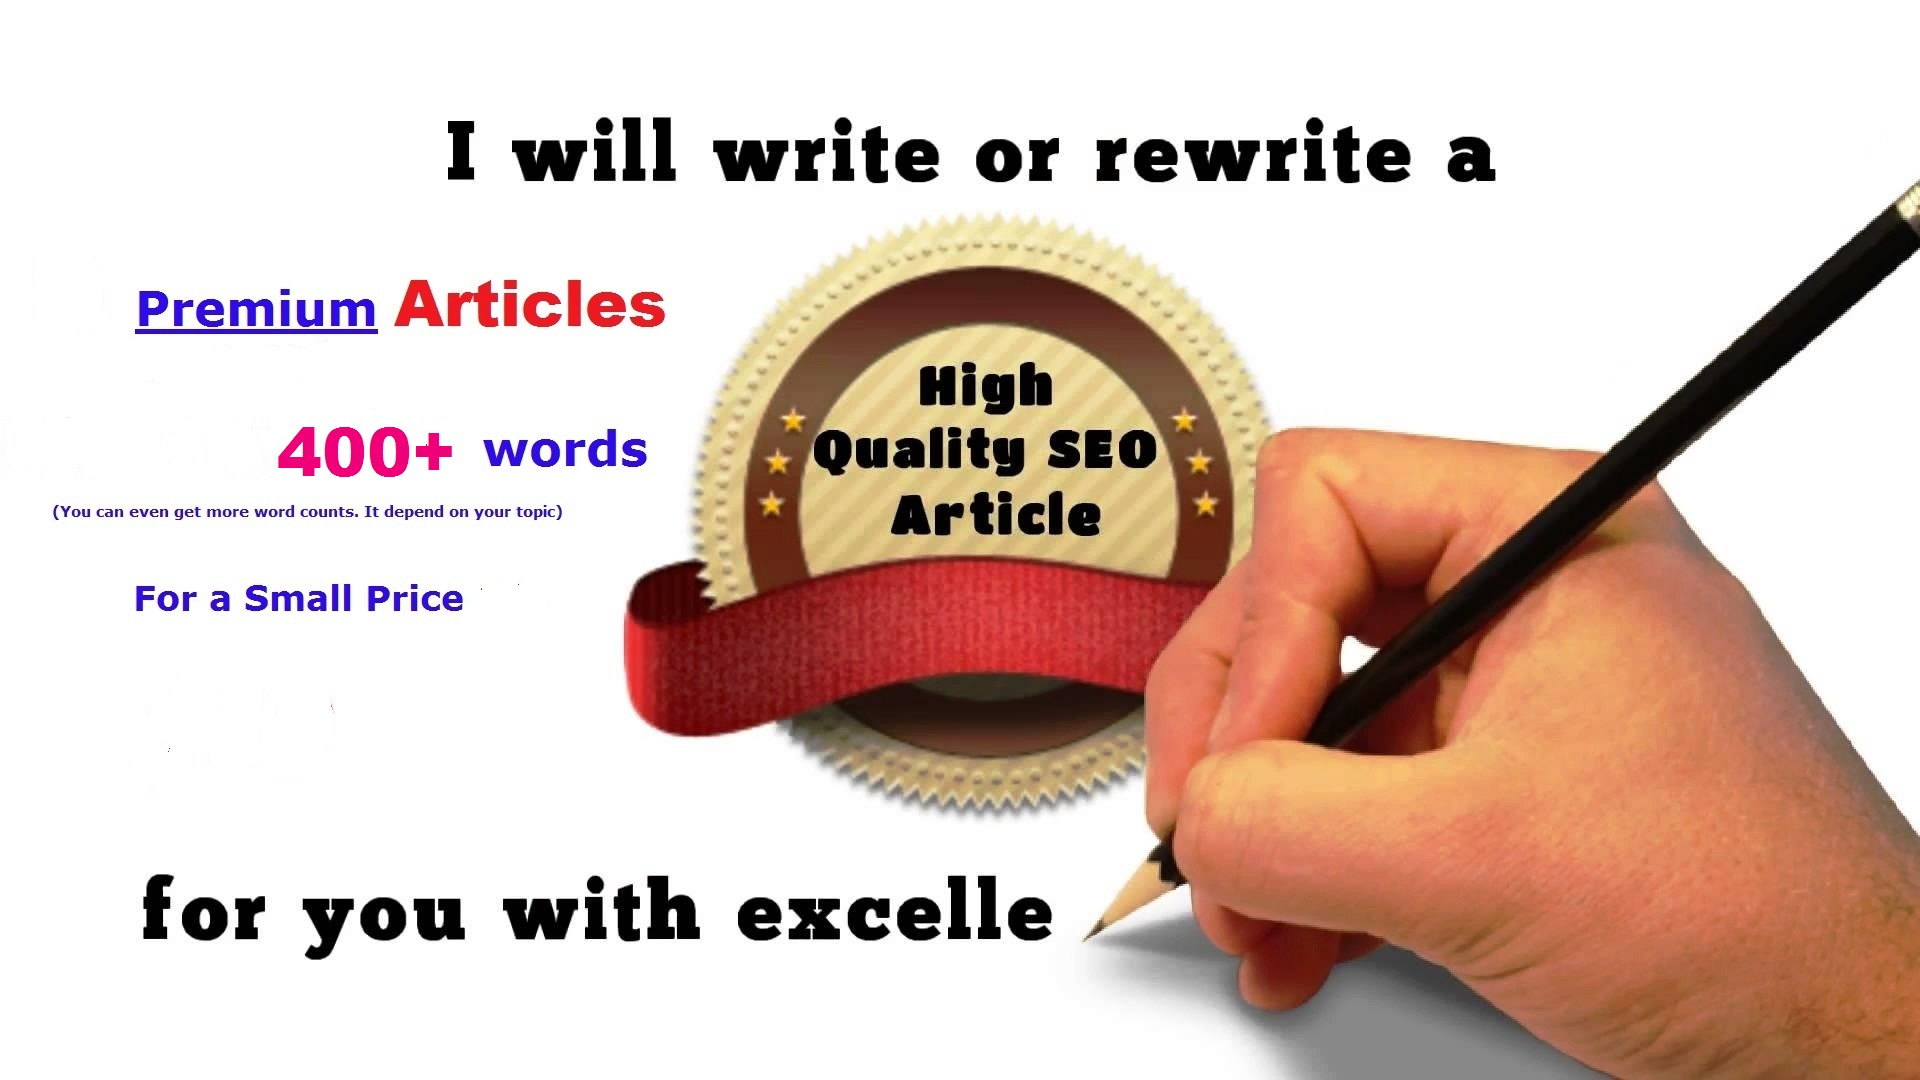 Cheap QUALITY Article -Write For You 400 - 500 Words Fresh and Original Article On Personal Development or Traveling - Best QUALITY Hurry Now